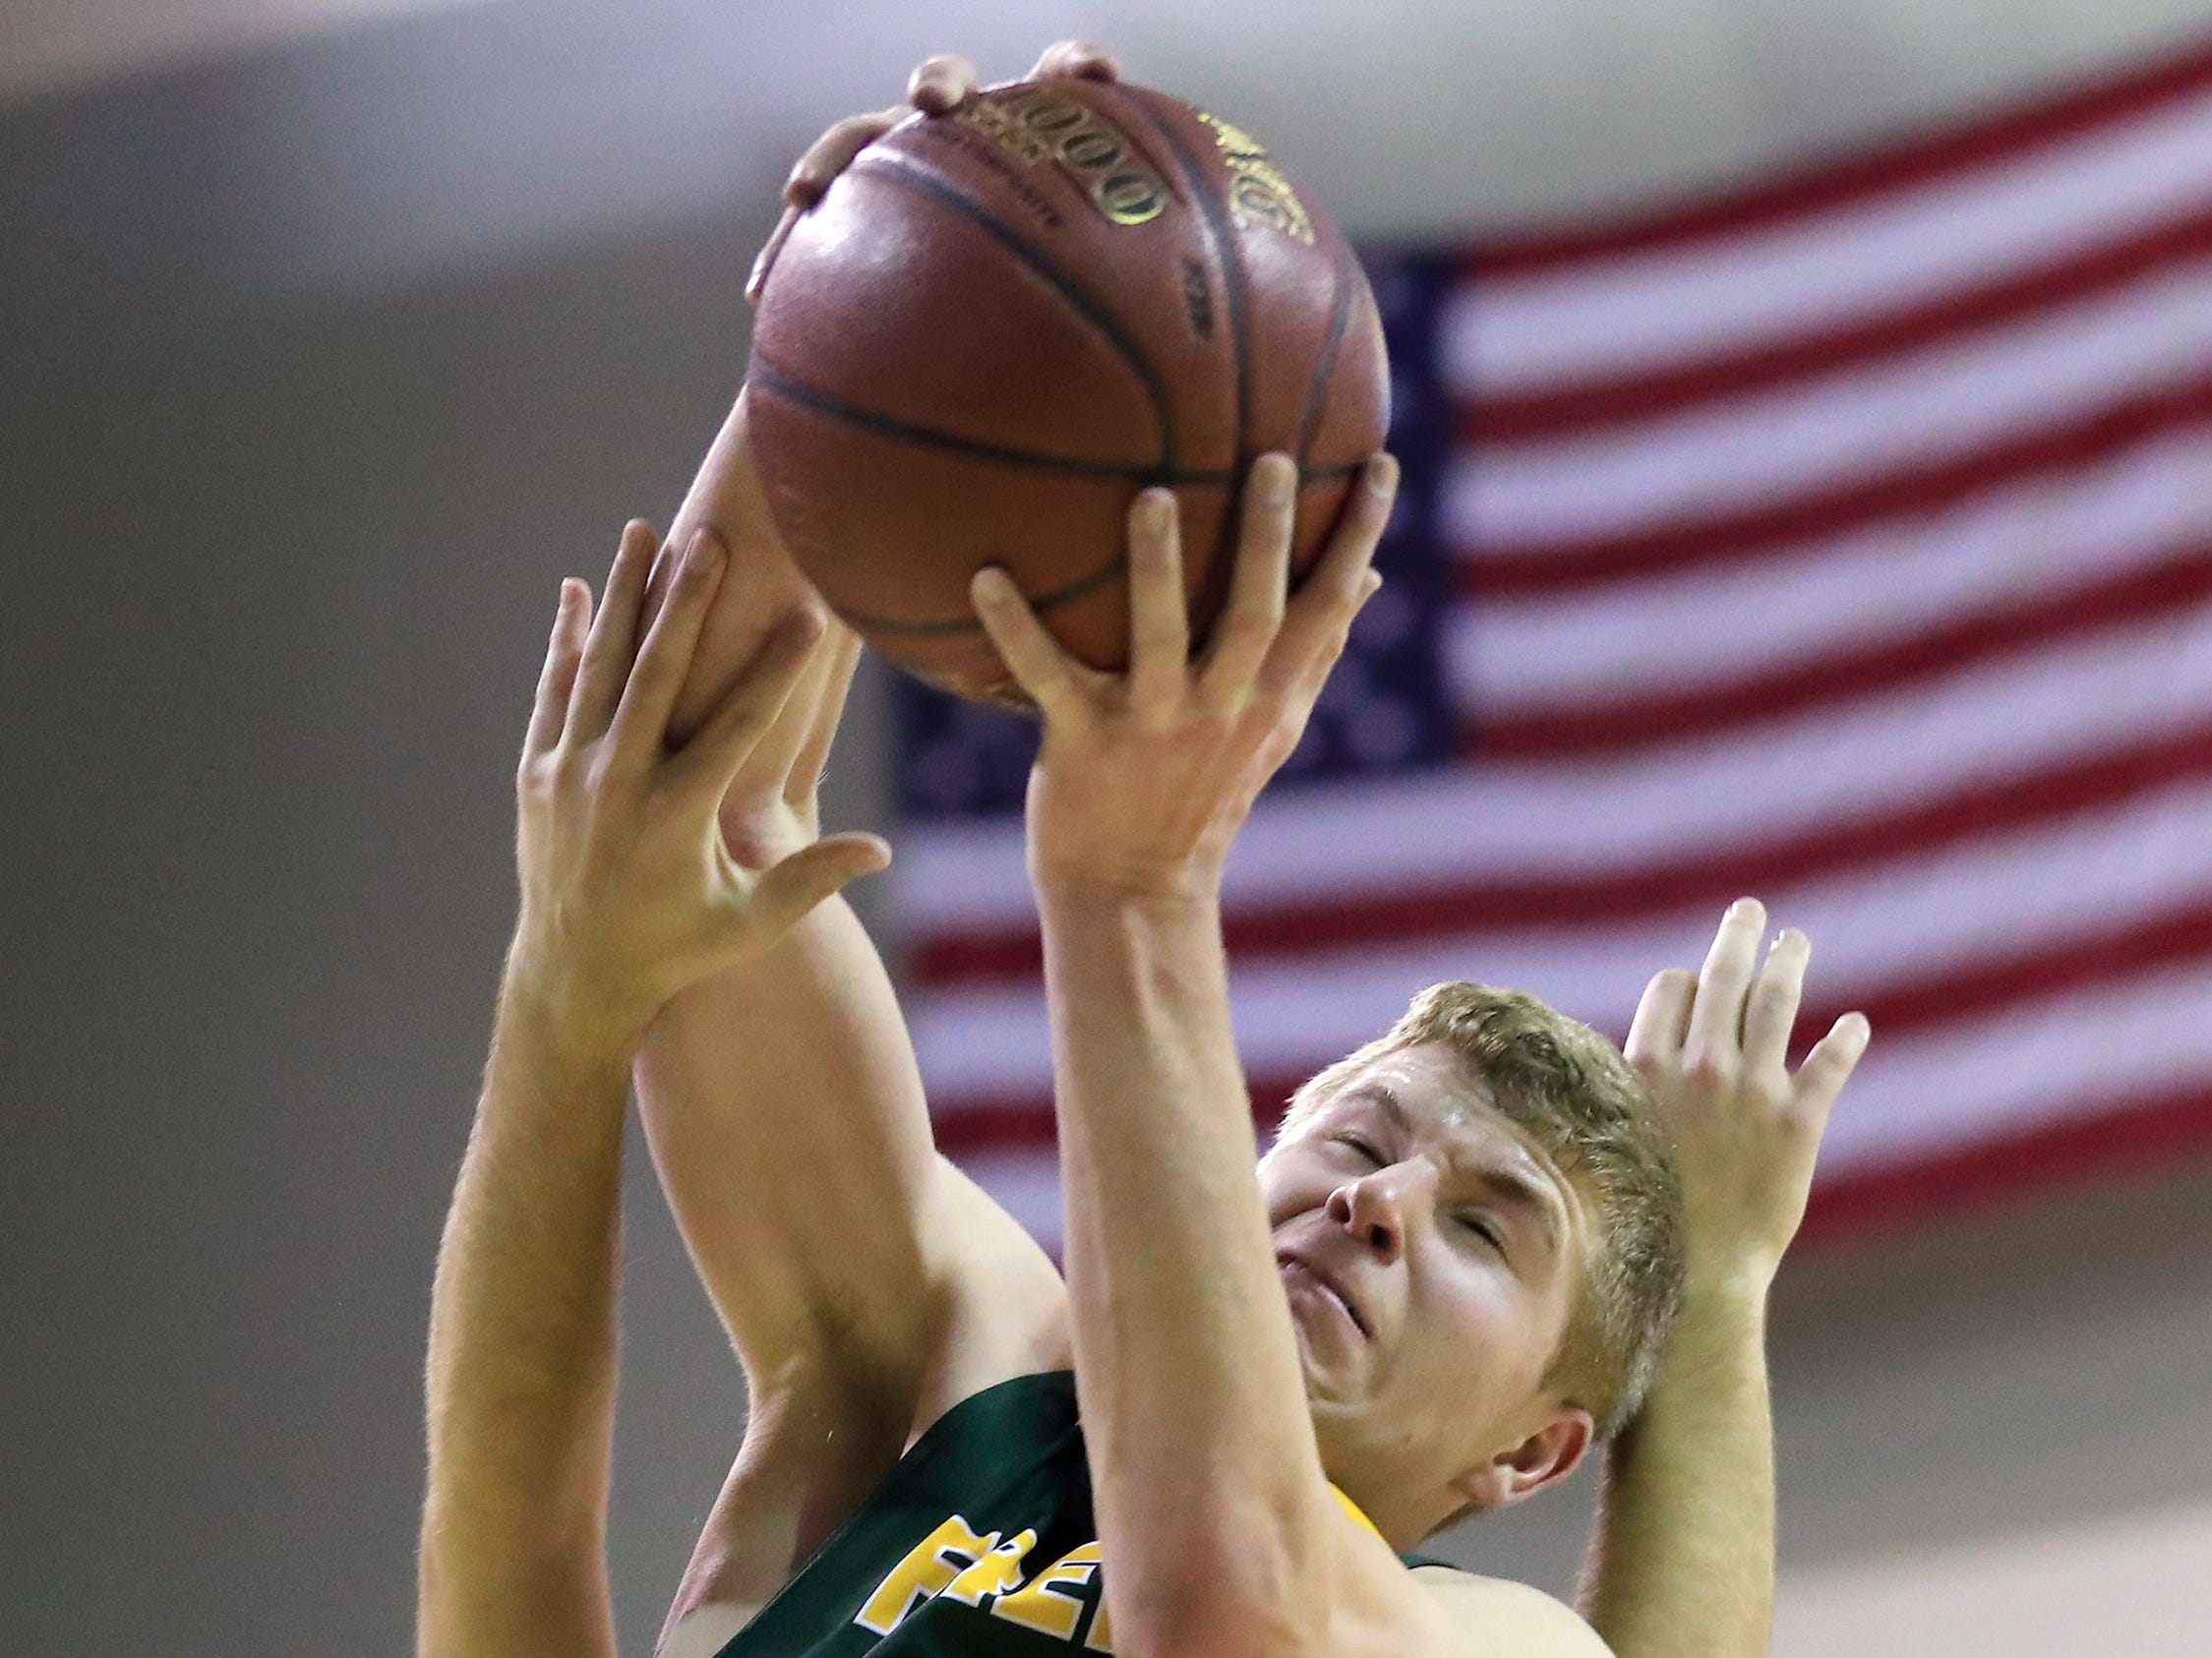 Freedom's Bryce Vandenberg (20) grabs a rebound against New Holstein at the Sun Drop Shootout at the Kress Center on Thursday, December 27, 2018 in Green Bay, Wis.